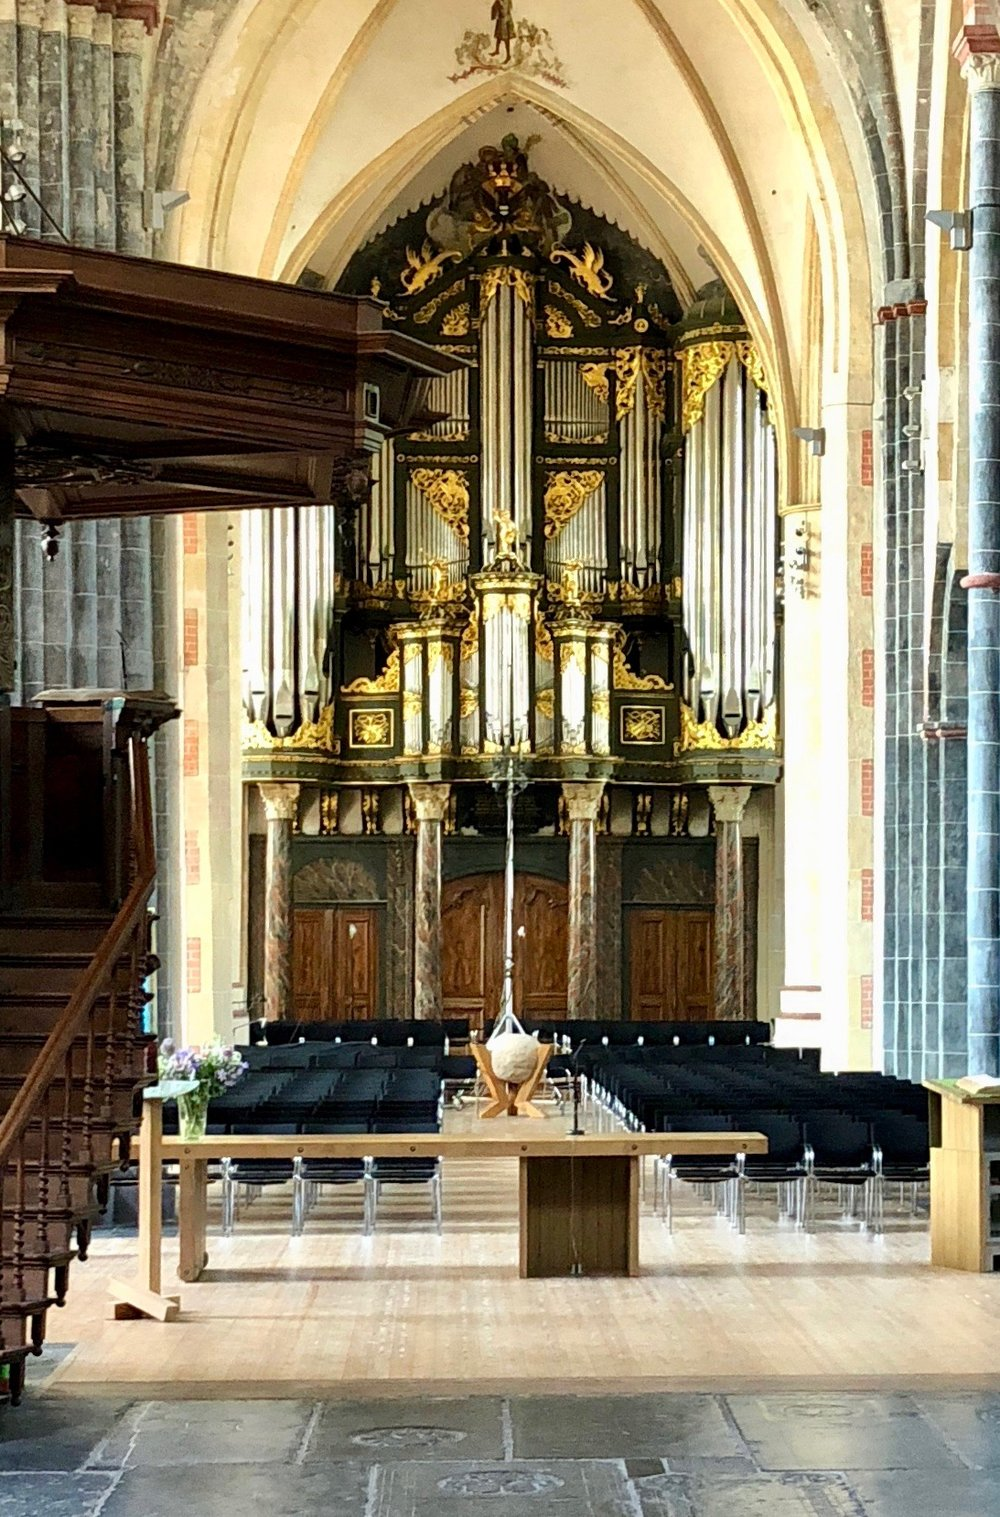 1692 Arp Schnitter organ as viewed from the Quire, Martinikerk, Groningen.